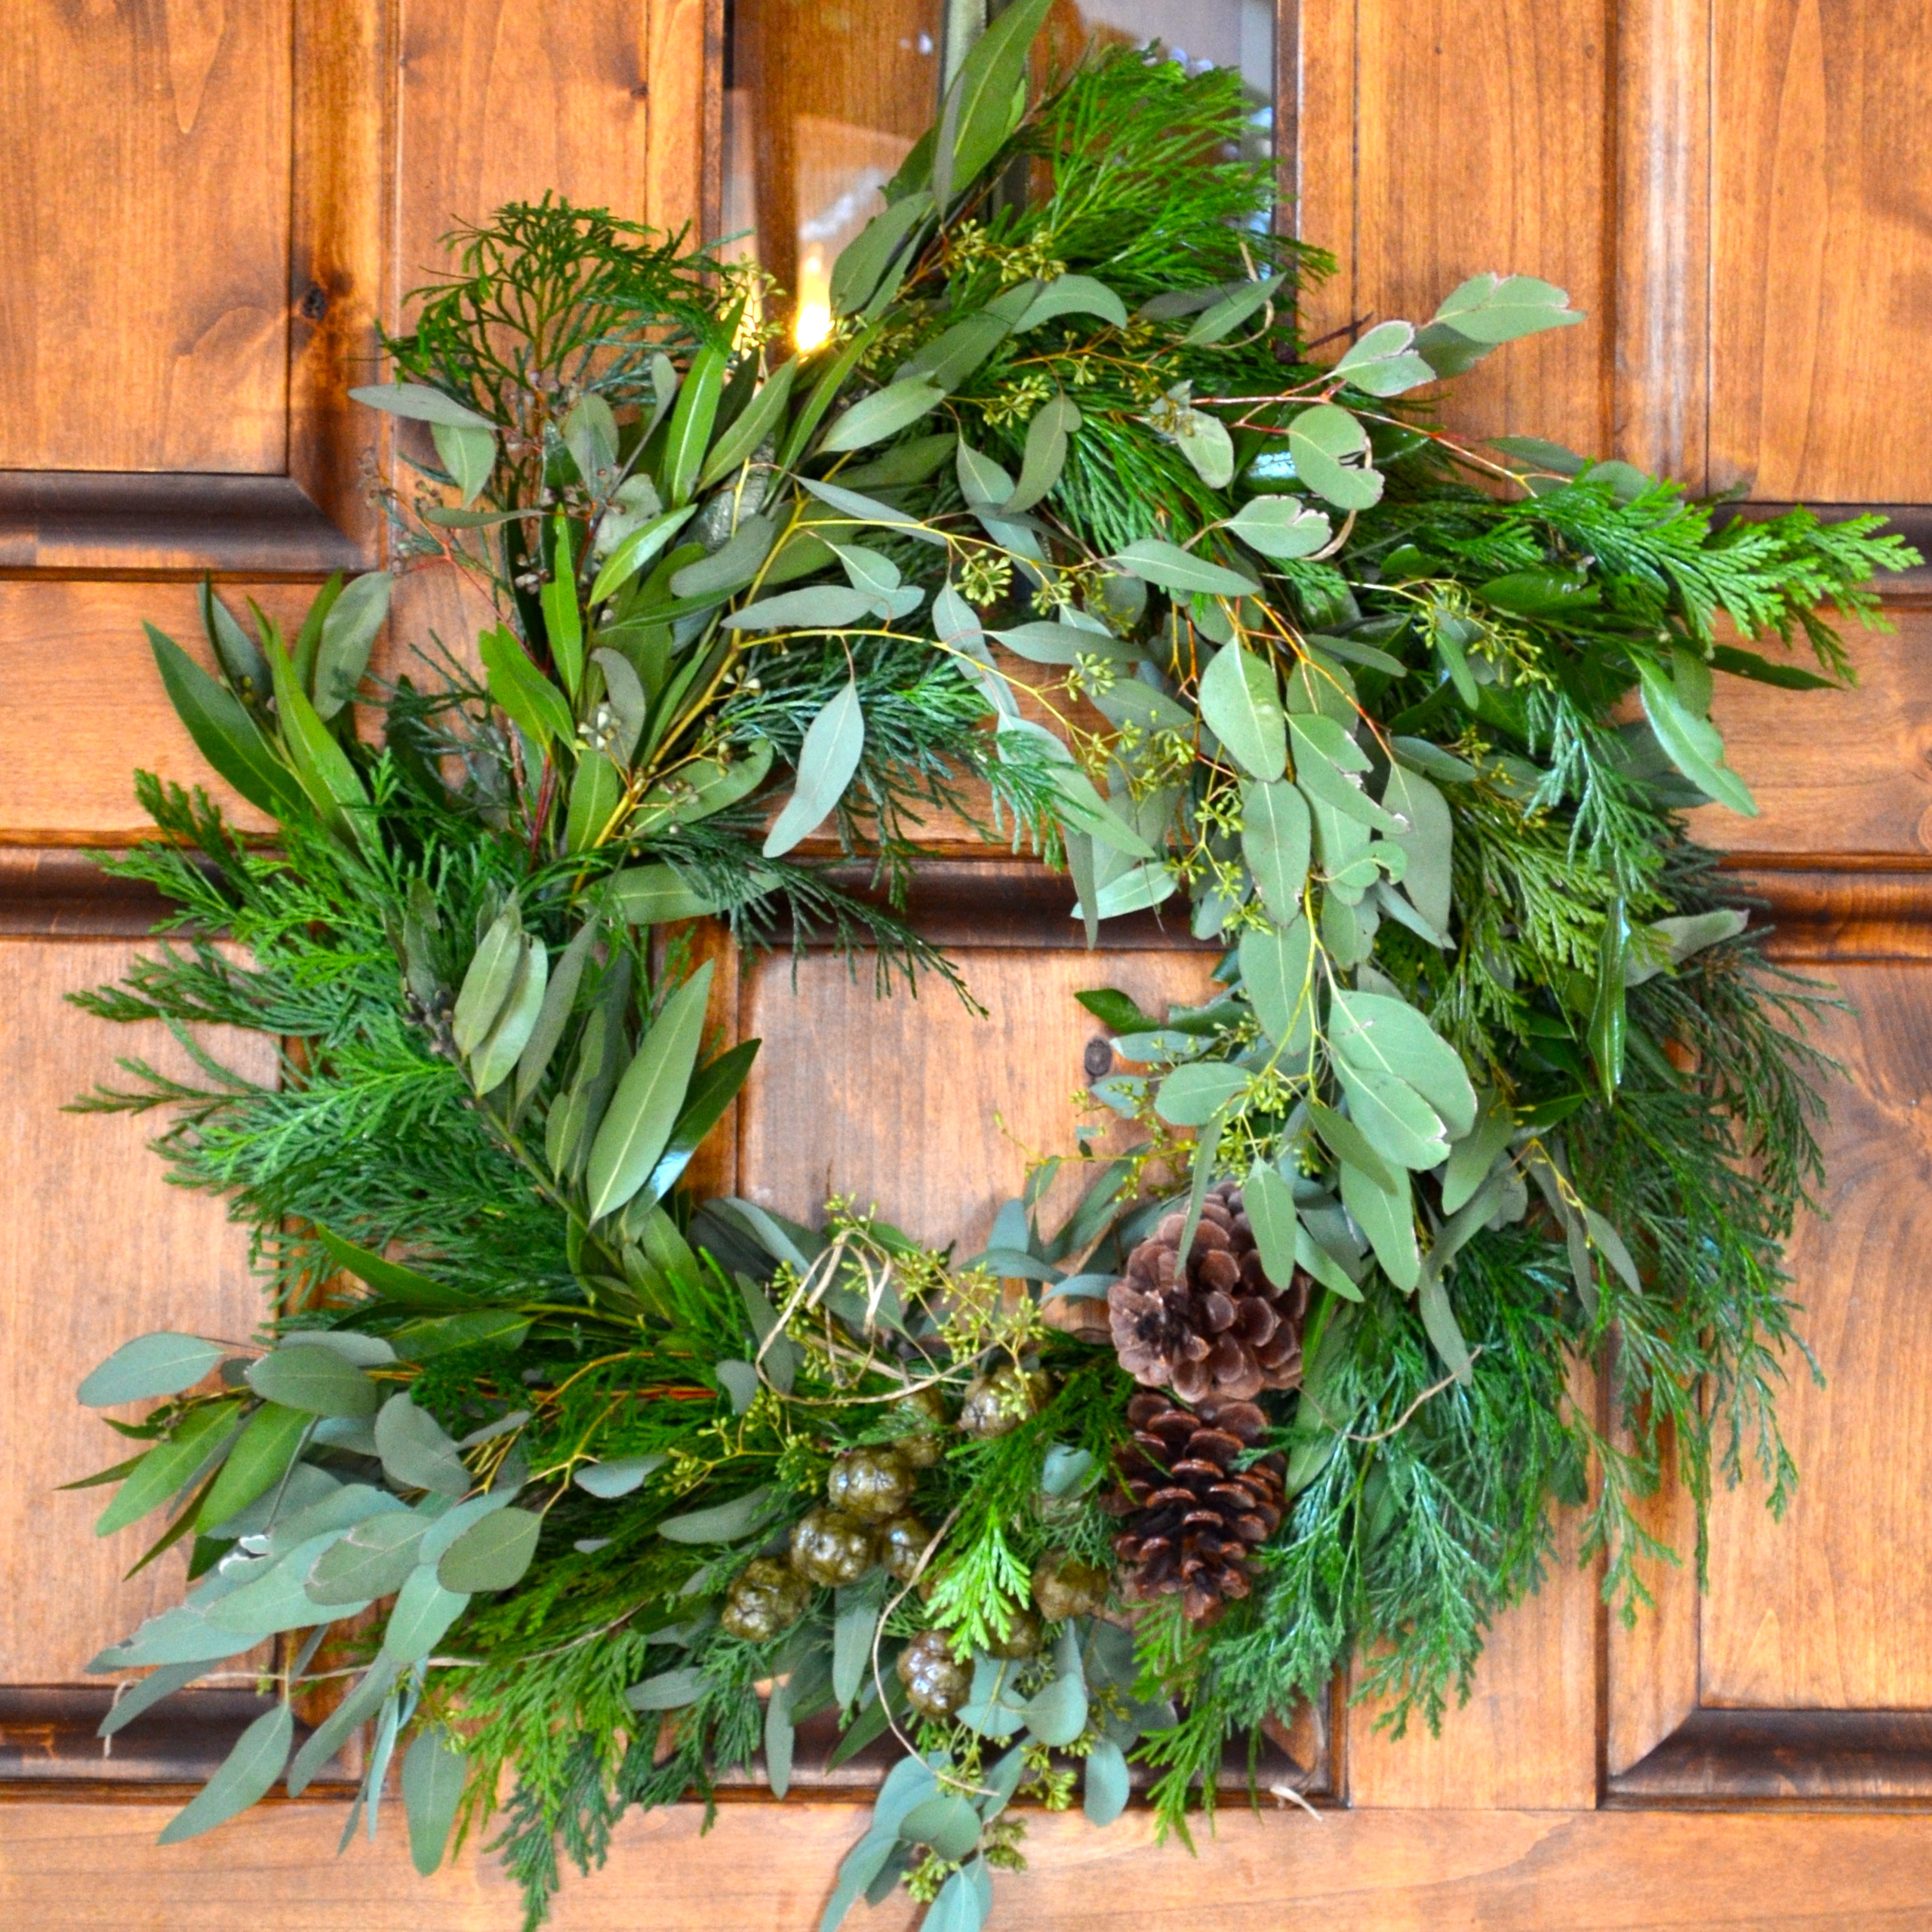 LEARN TO MAKE YOUR OWN HOLIDAY WREATH - DIY TUTORIAL WITH ...